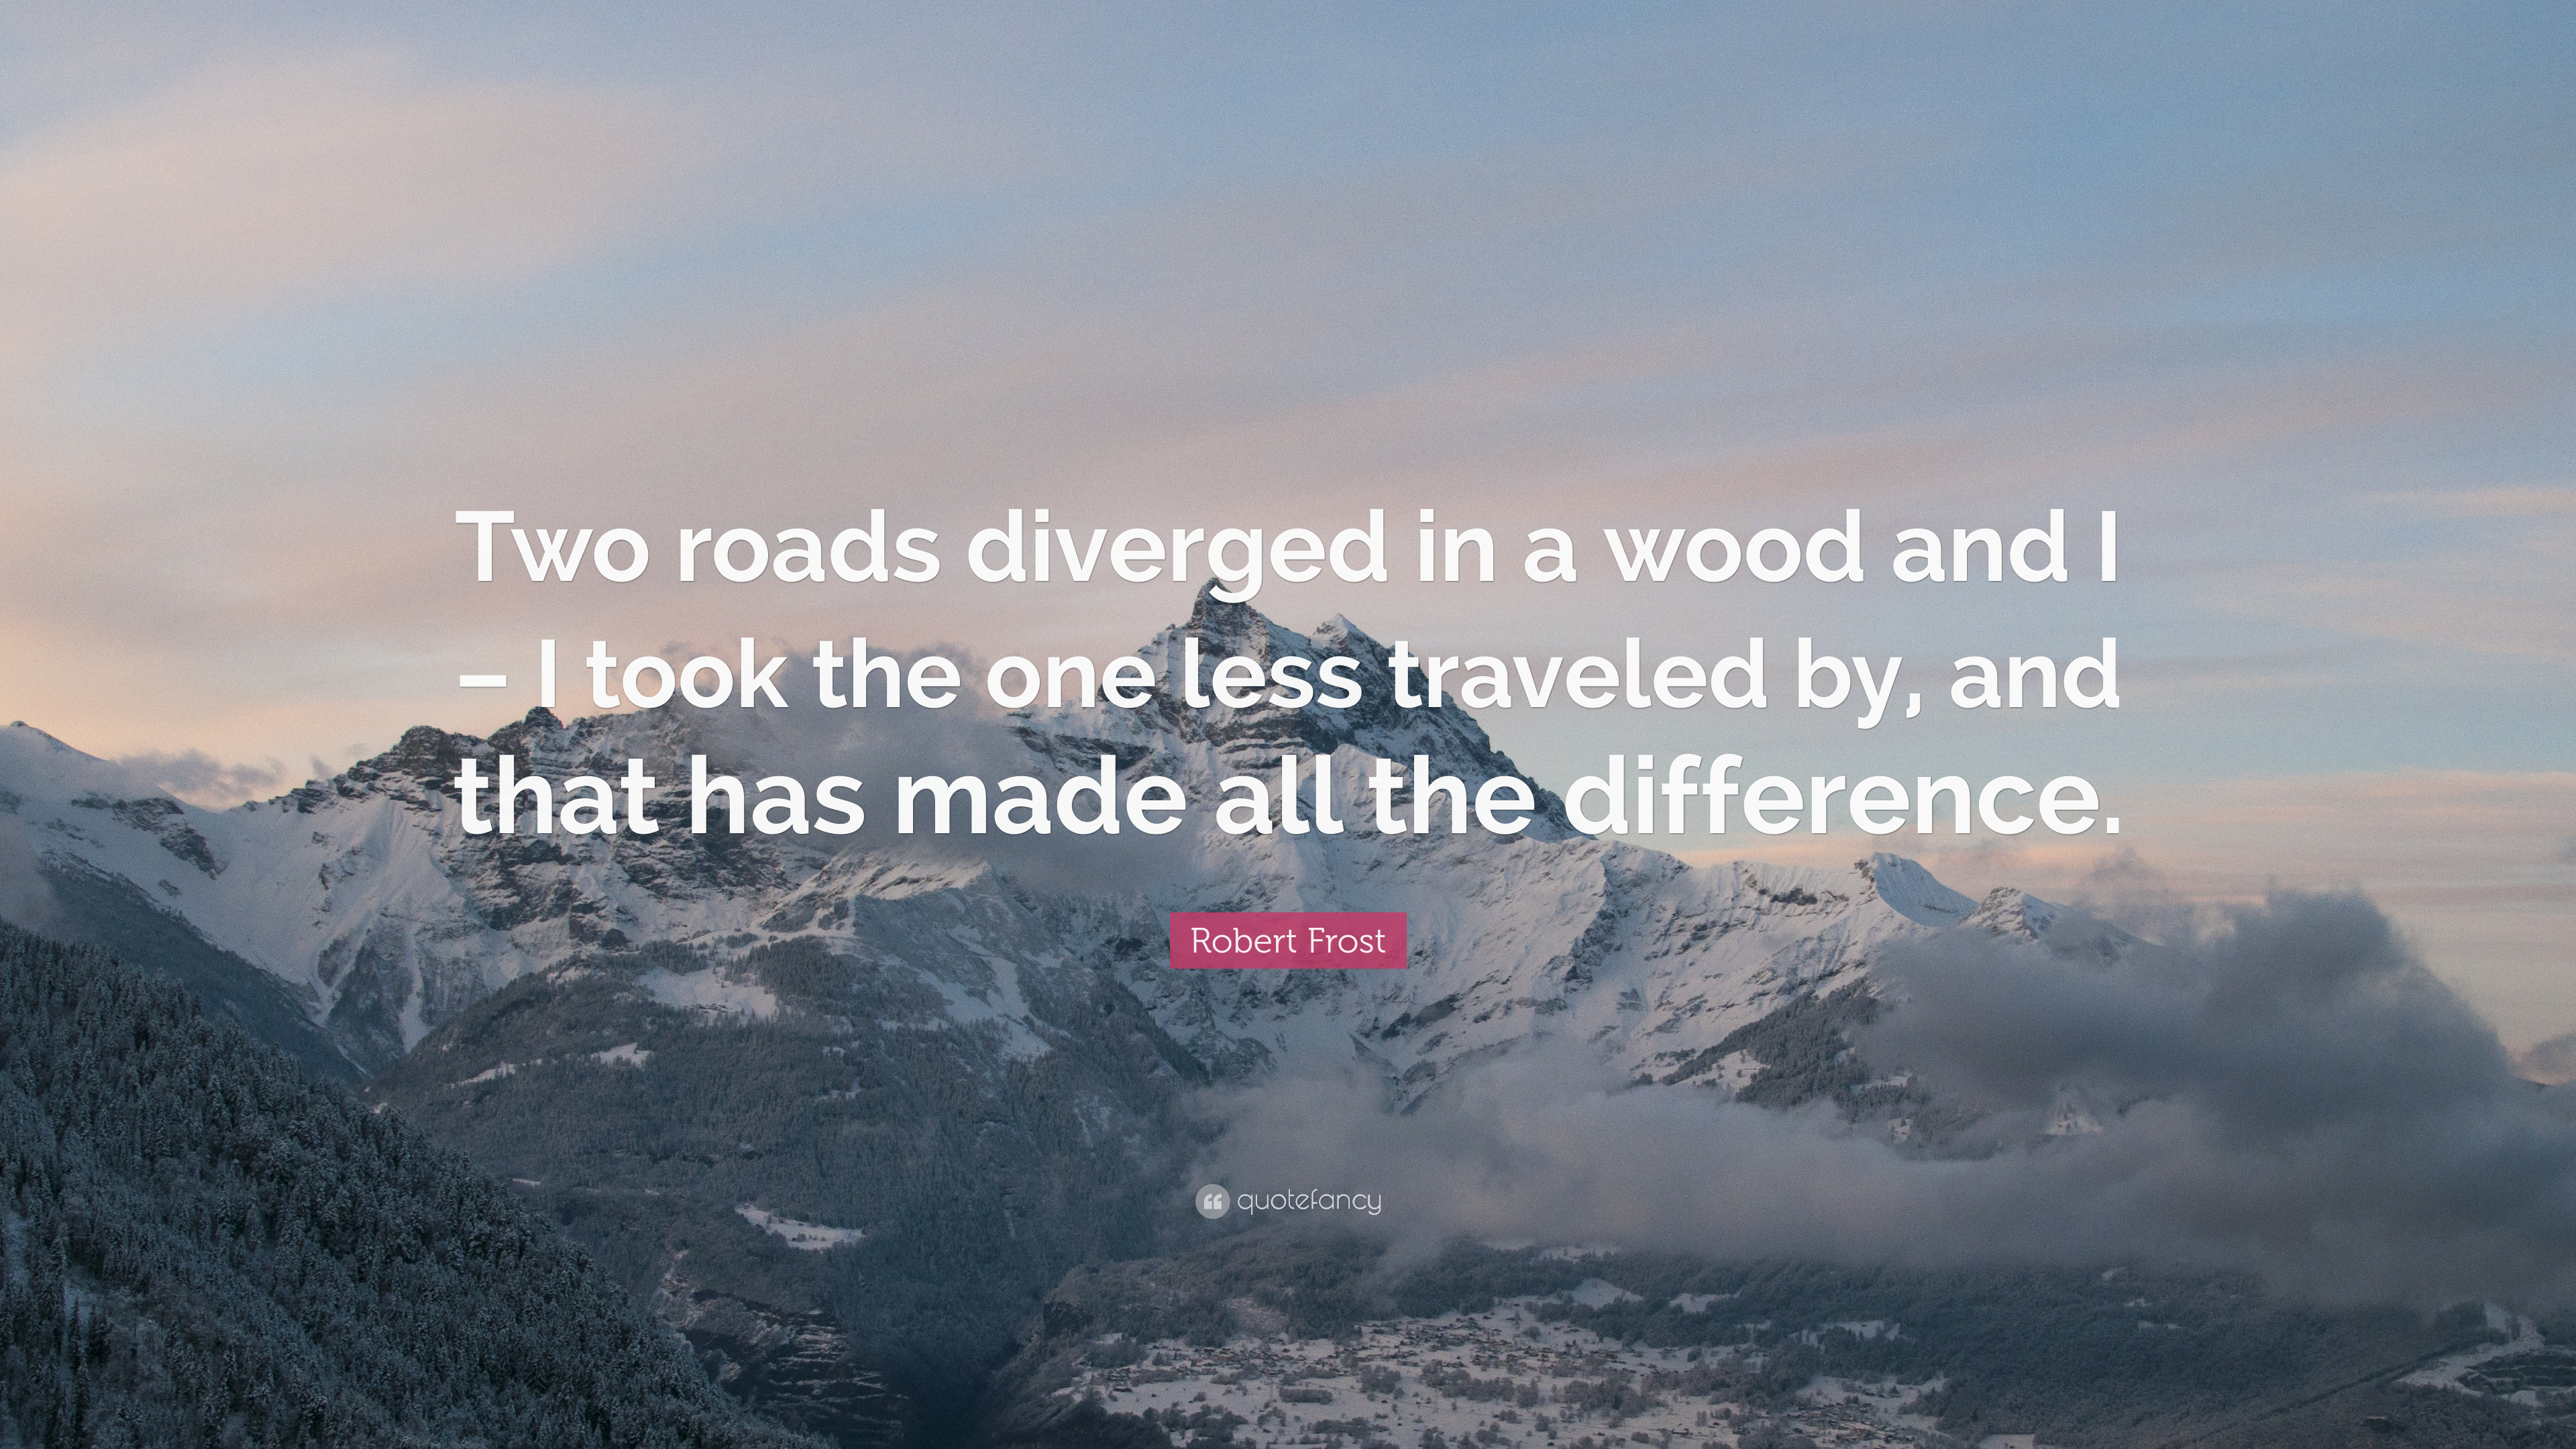 Robert Frost Quote Two Roads Diverged In A Wood And I